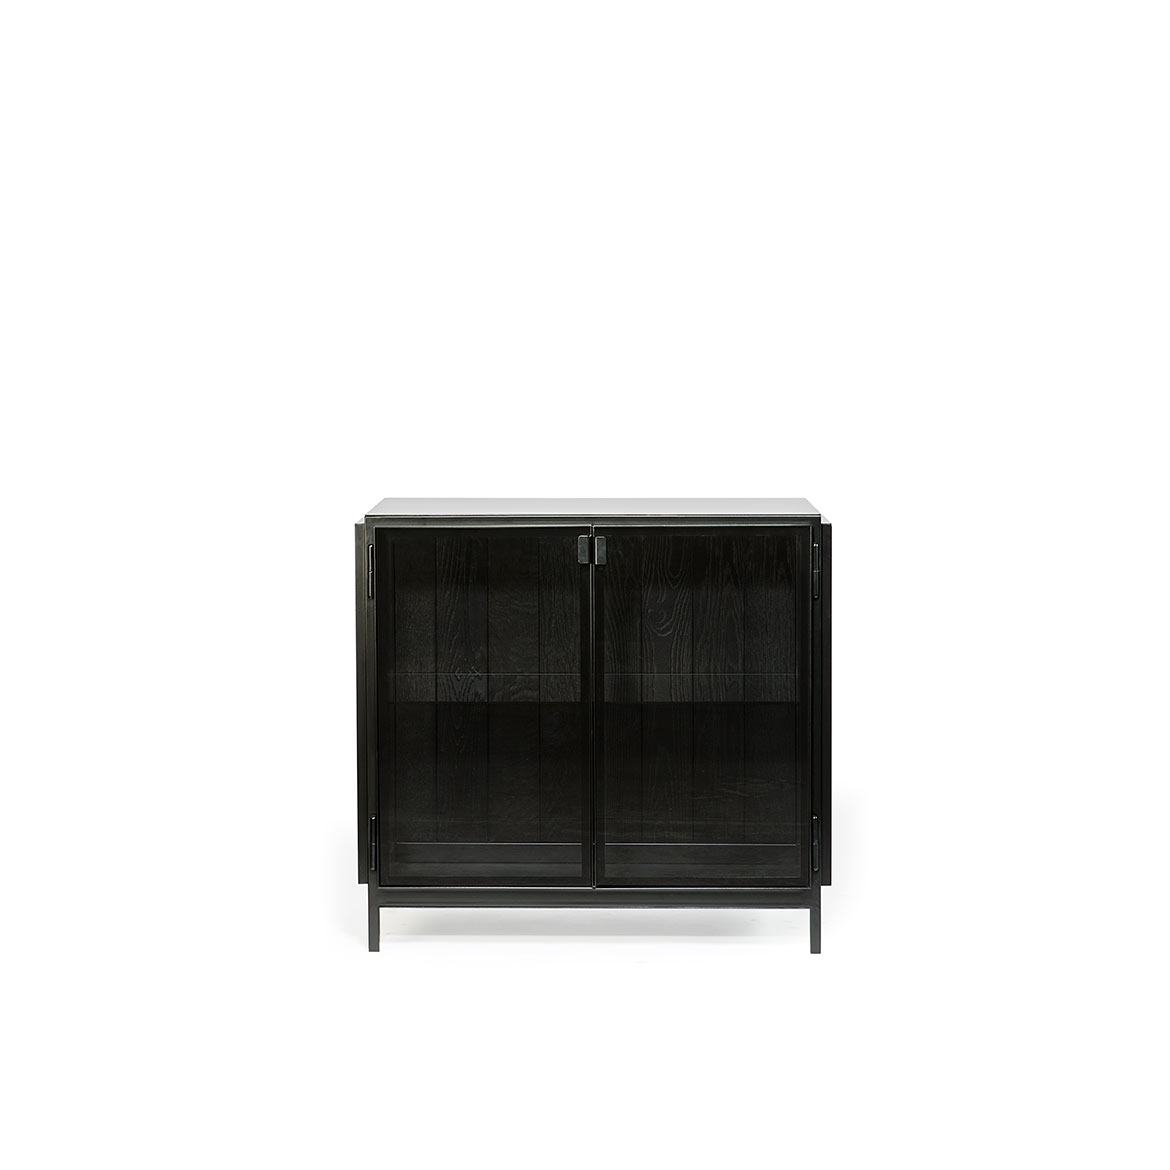 Ethnicraft Anders sideboard – 2 doors